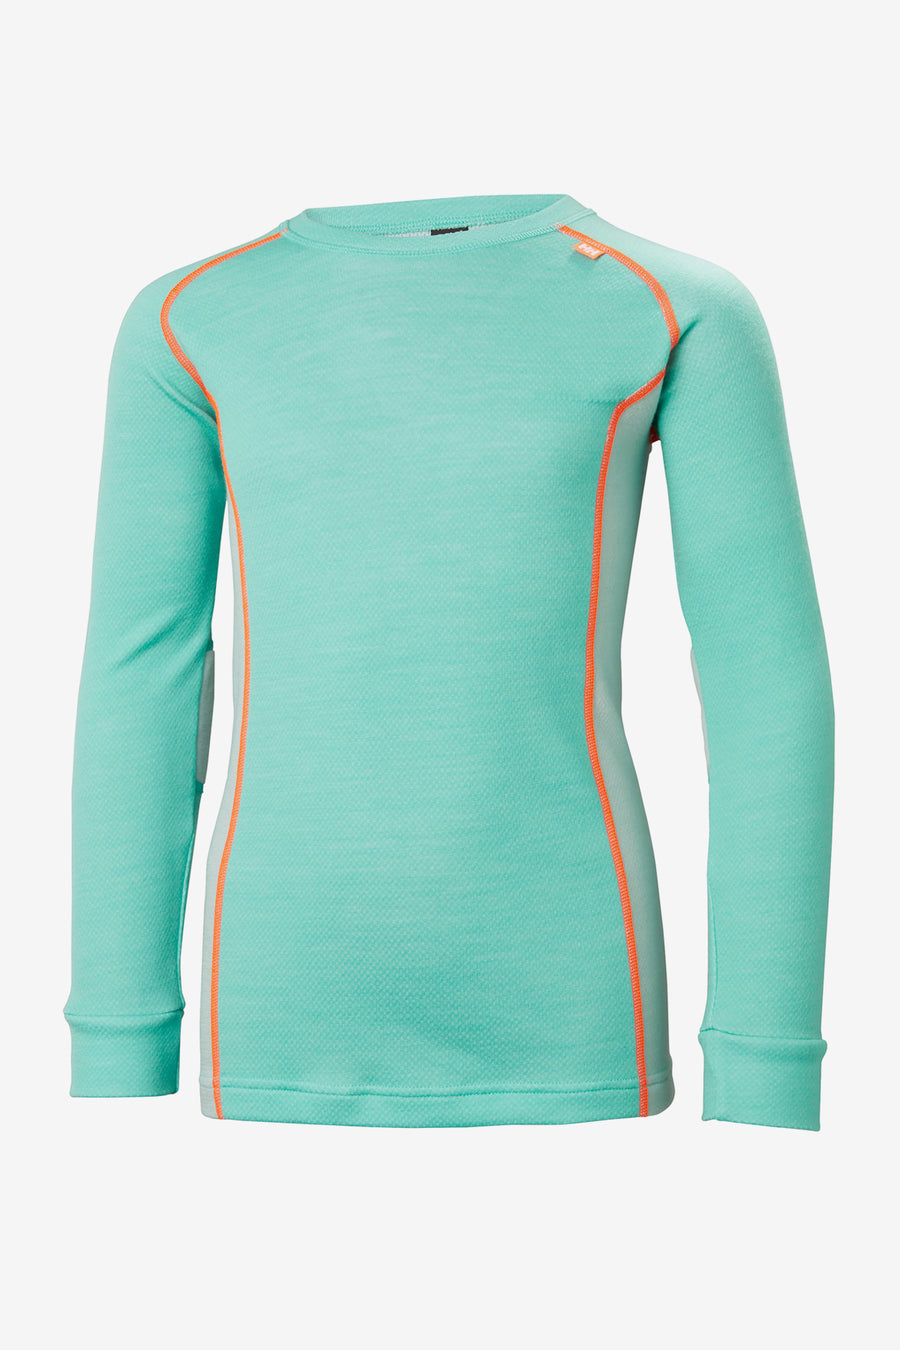 Helly Hansen Jr Lifa Merino Baselayer Set - Pool Blue